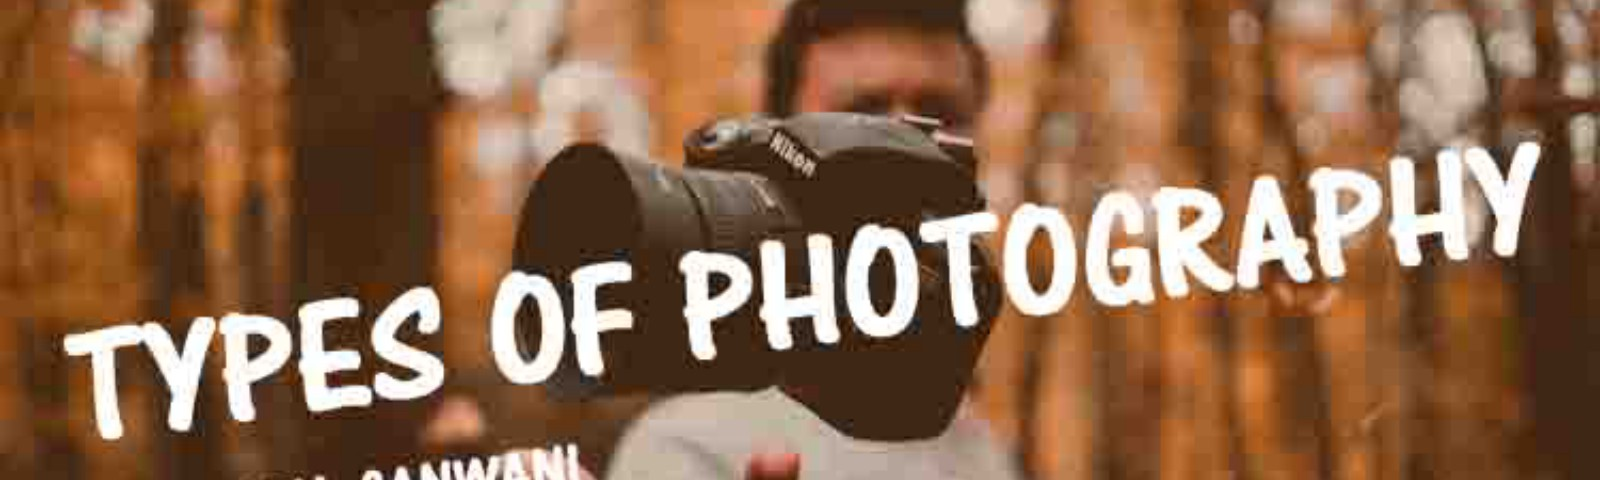 top 18 types of photography—photography ideas and topics by kamal ganwani